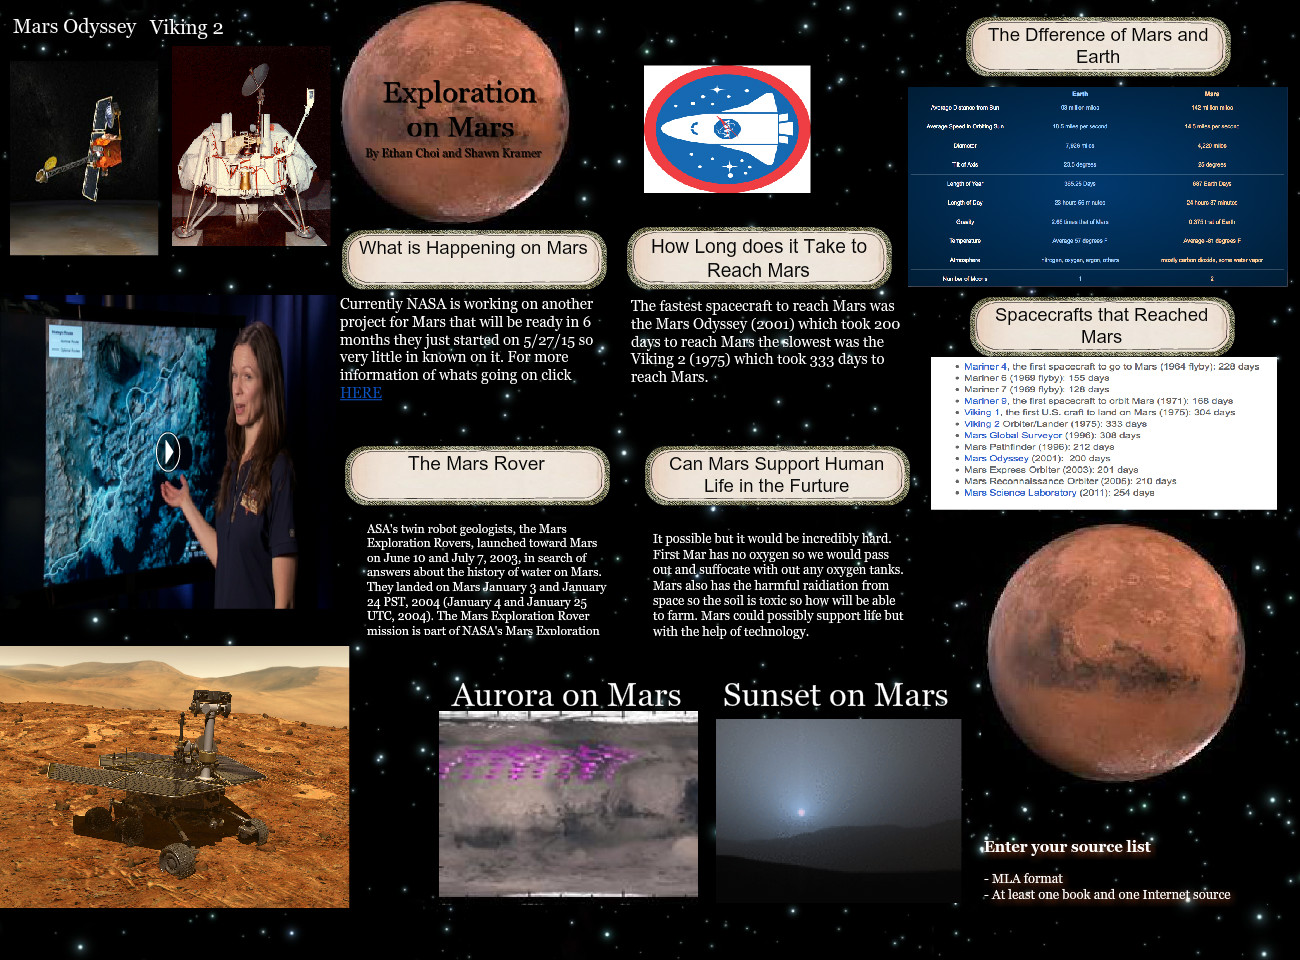 [2015] Ethan C (6th Earth Science 2015): Exlporation of Mars Ethan